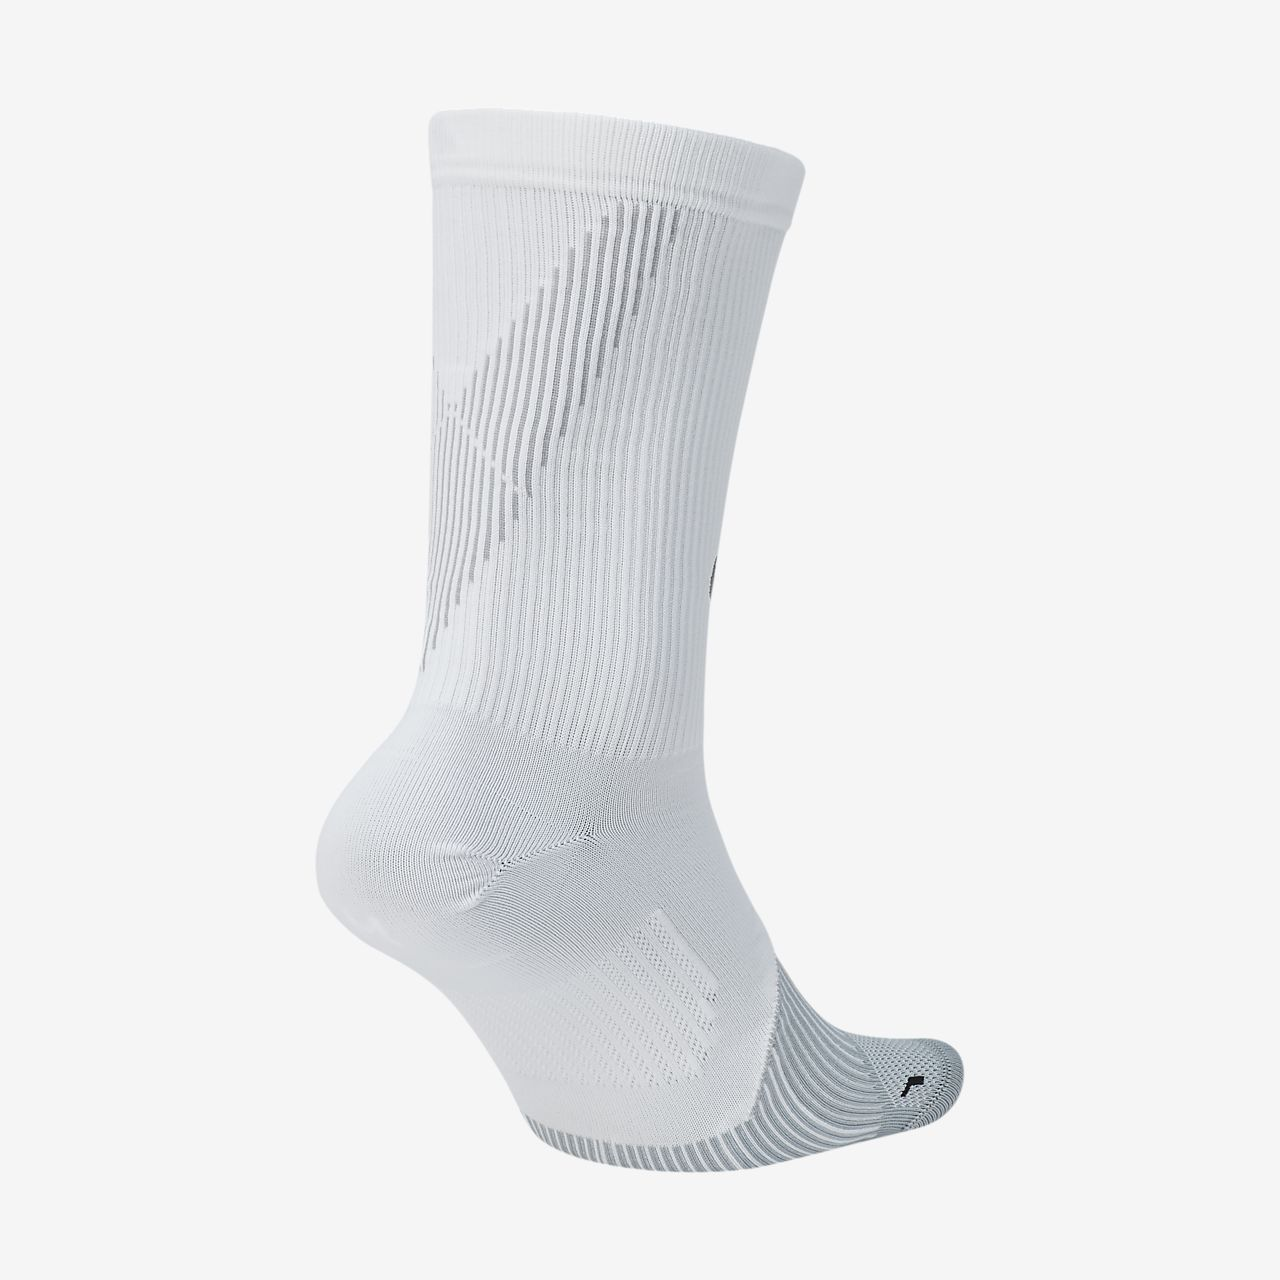 Nike Elite Lightweight Crew Running Socks